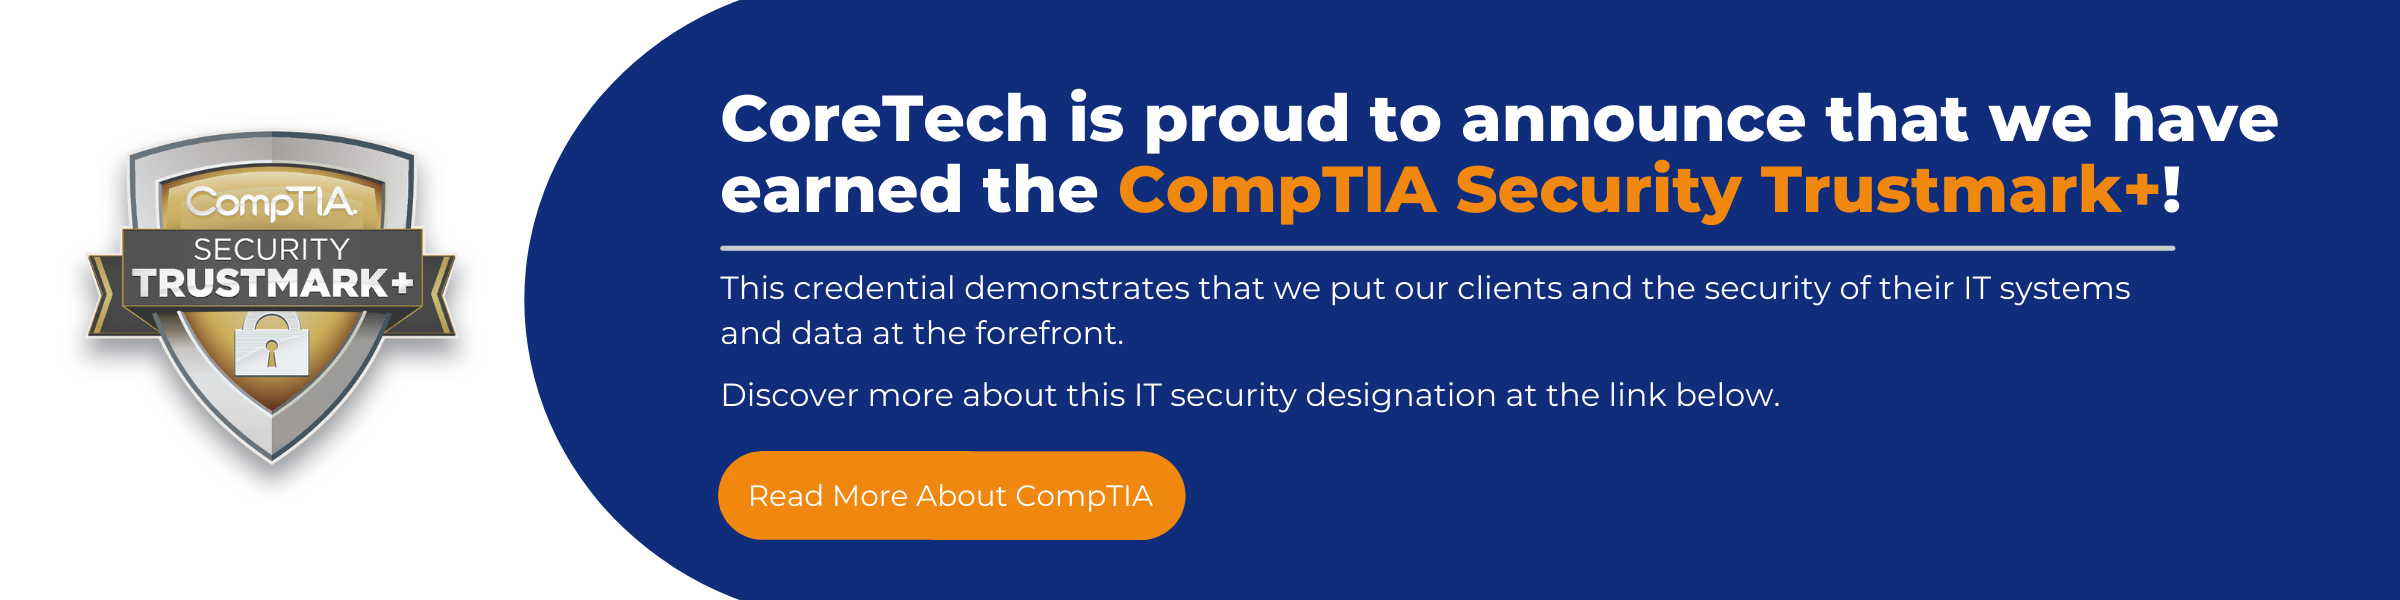 CoreTech is proud to announce that we have earned the CompTIA Security Trustmark+!